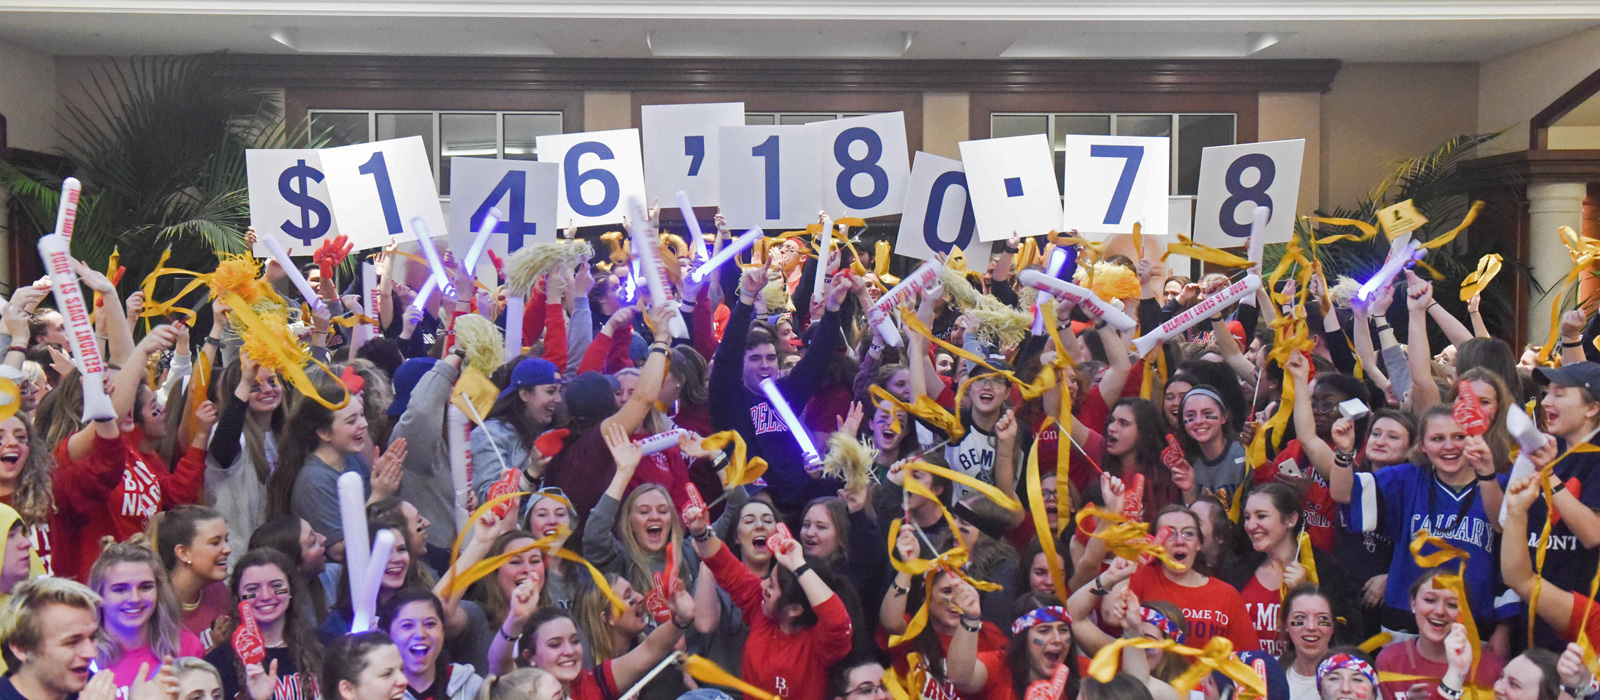 Belmont Students Reveal $146K Fundraising Total for St. Jude Children's Research Hospital on National Television Segment